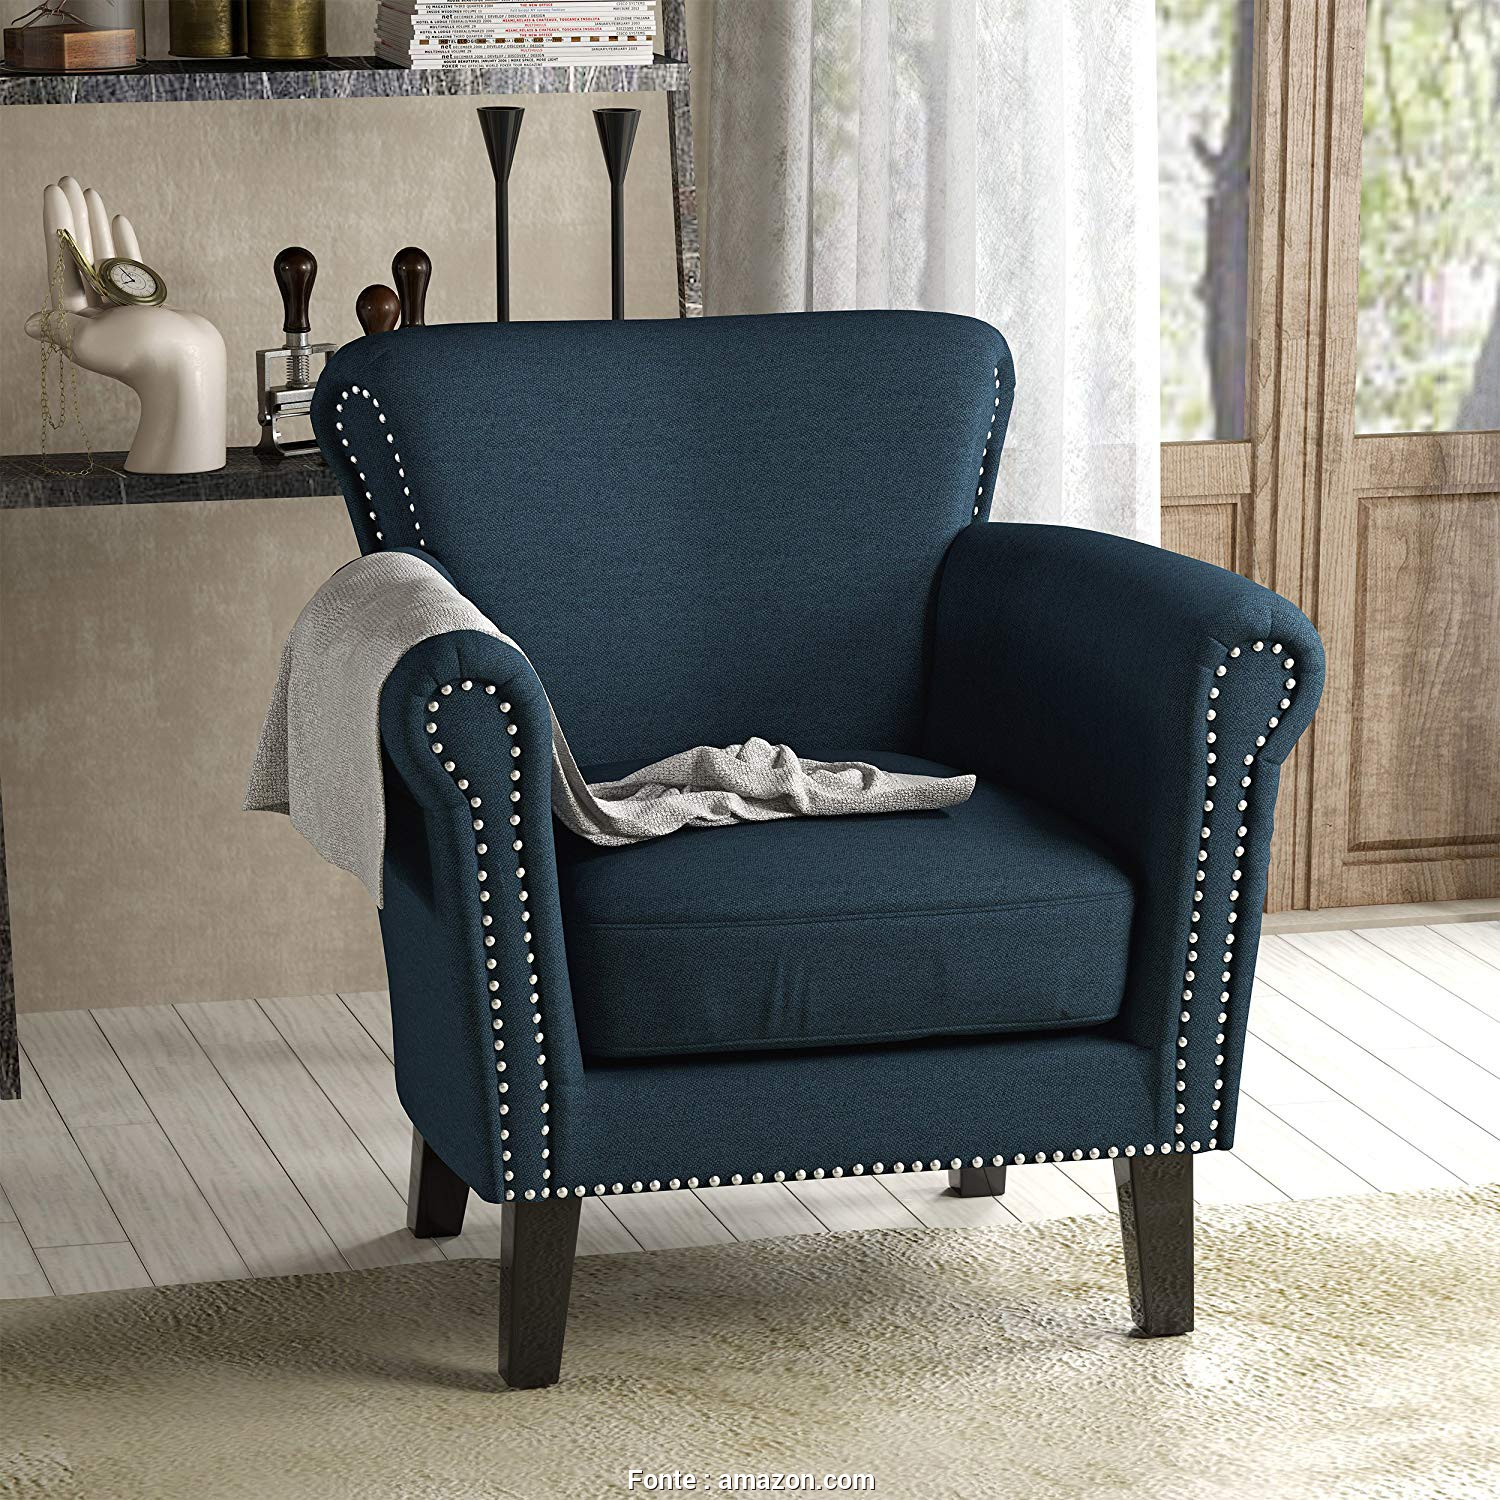 Amazon Plaid, Divano, Migliore Amazon.Com: Christopher Knight Home 302568 Brice-Ckh, Chair, Navy Blue + Dark Brown: Kitchen & Dining